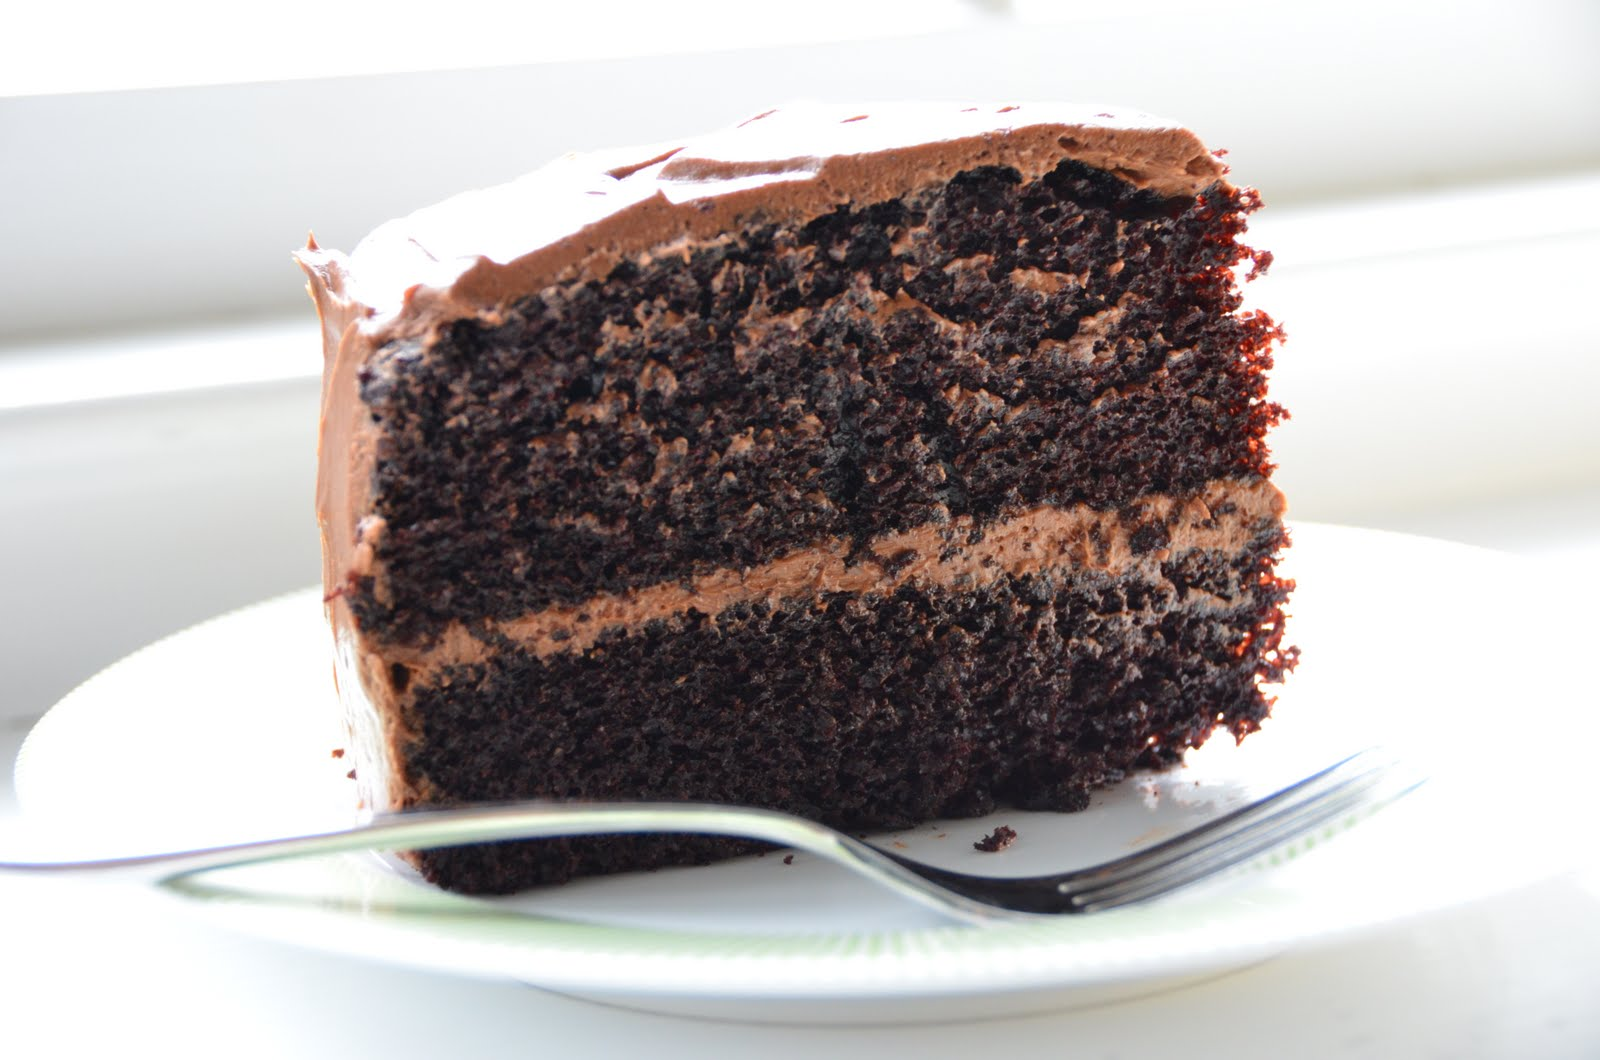 Super moist cakes recipes from scratch - Food fast recipes